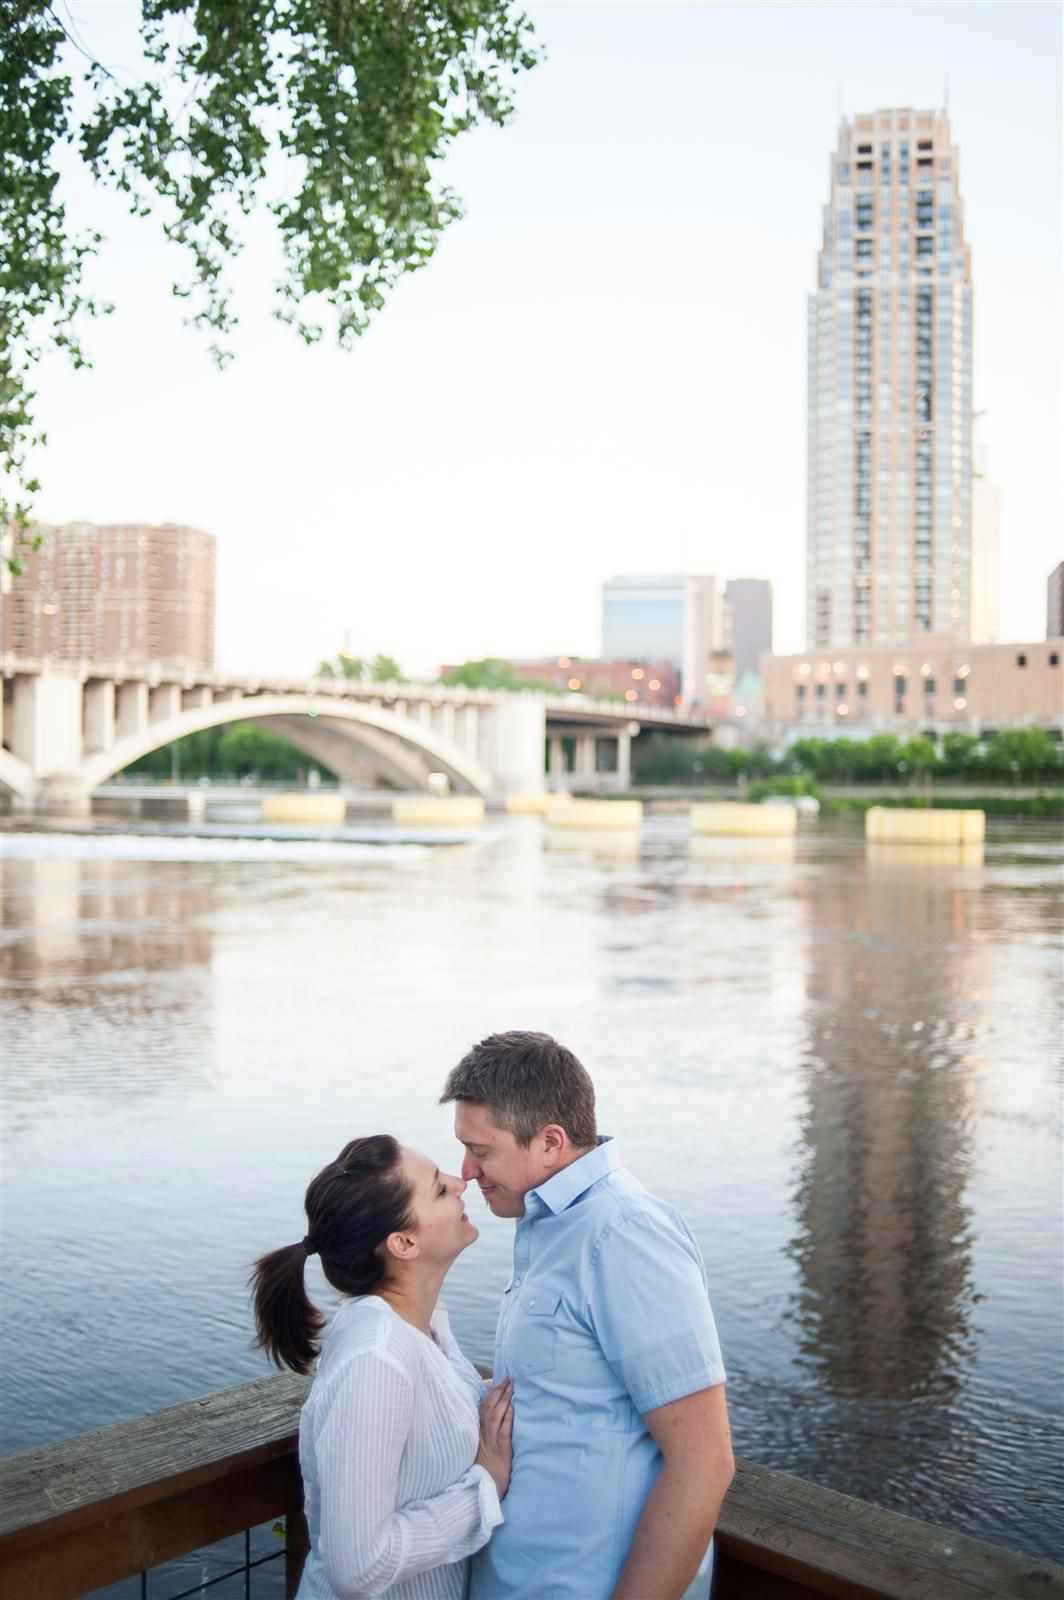 Fun engagement session with Adam & Darcy on Nicollet Island, Minneapolis, MN - spring 2012 { WestonAlan Photography }